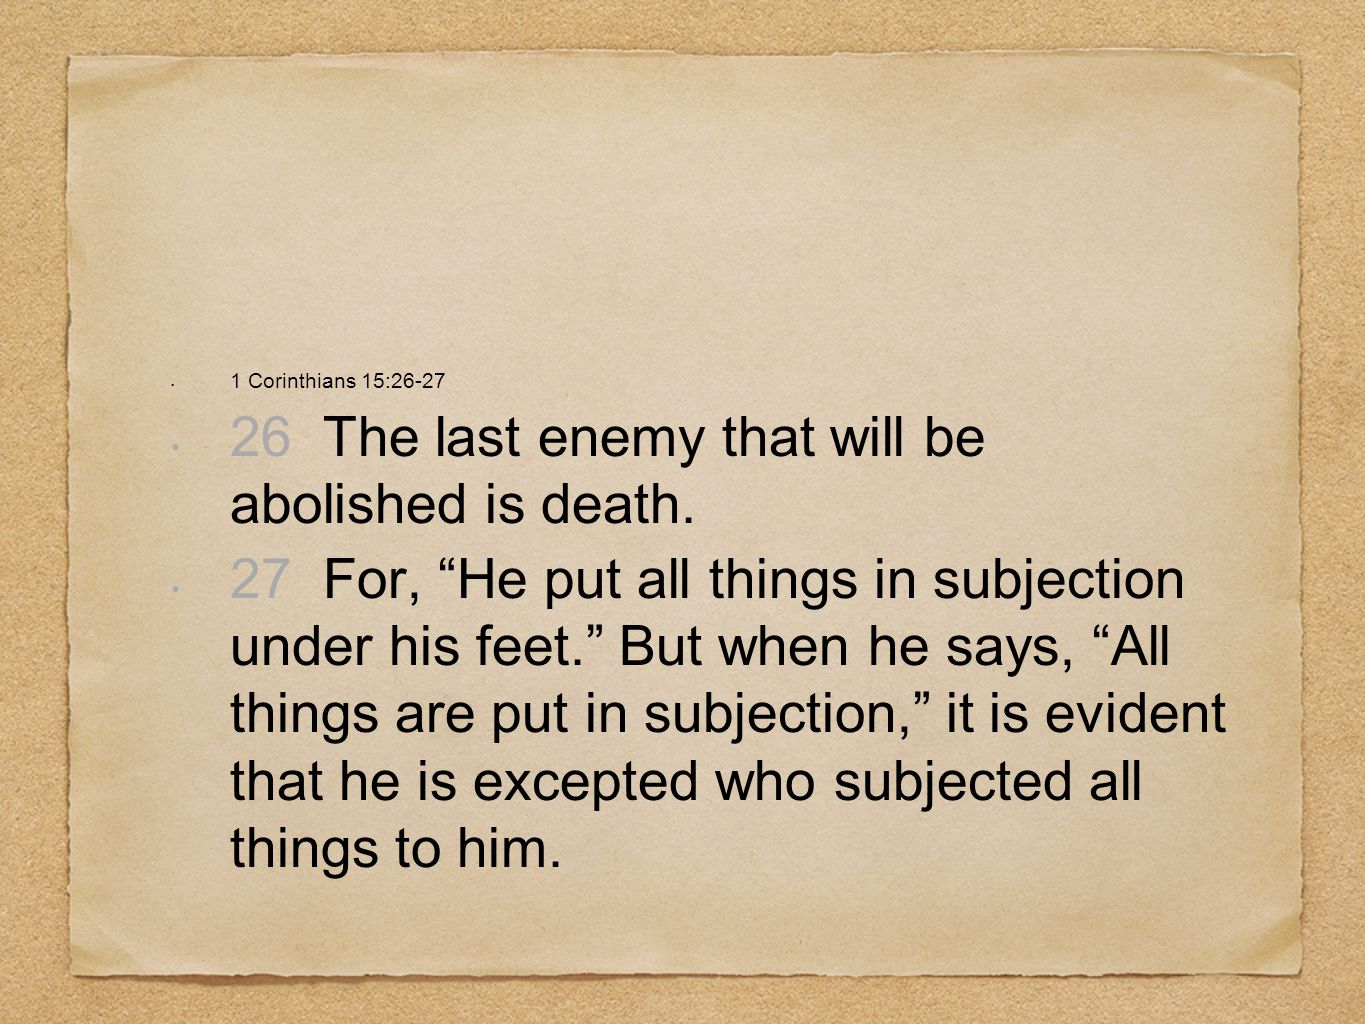 26 The last enemy that will be abolished is death.